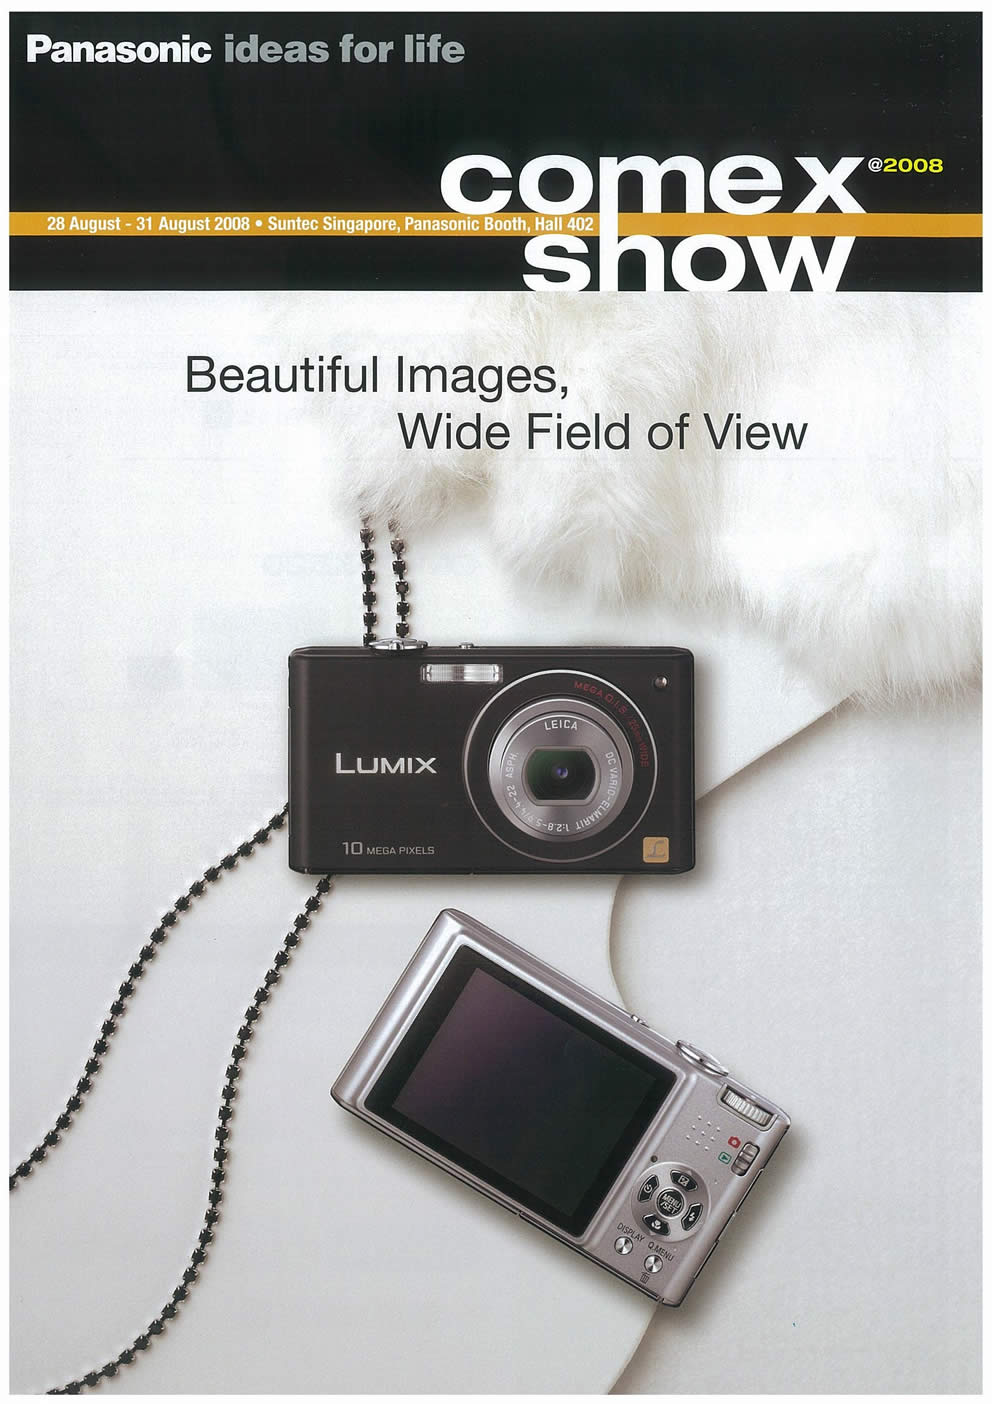 Comex 2008 price list image brochure of Panasonic Cameras Camcorders Page 1